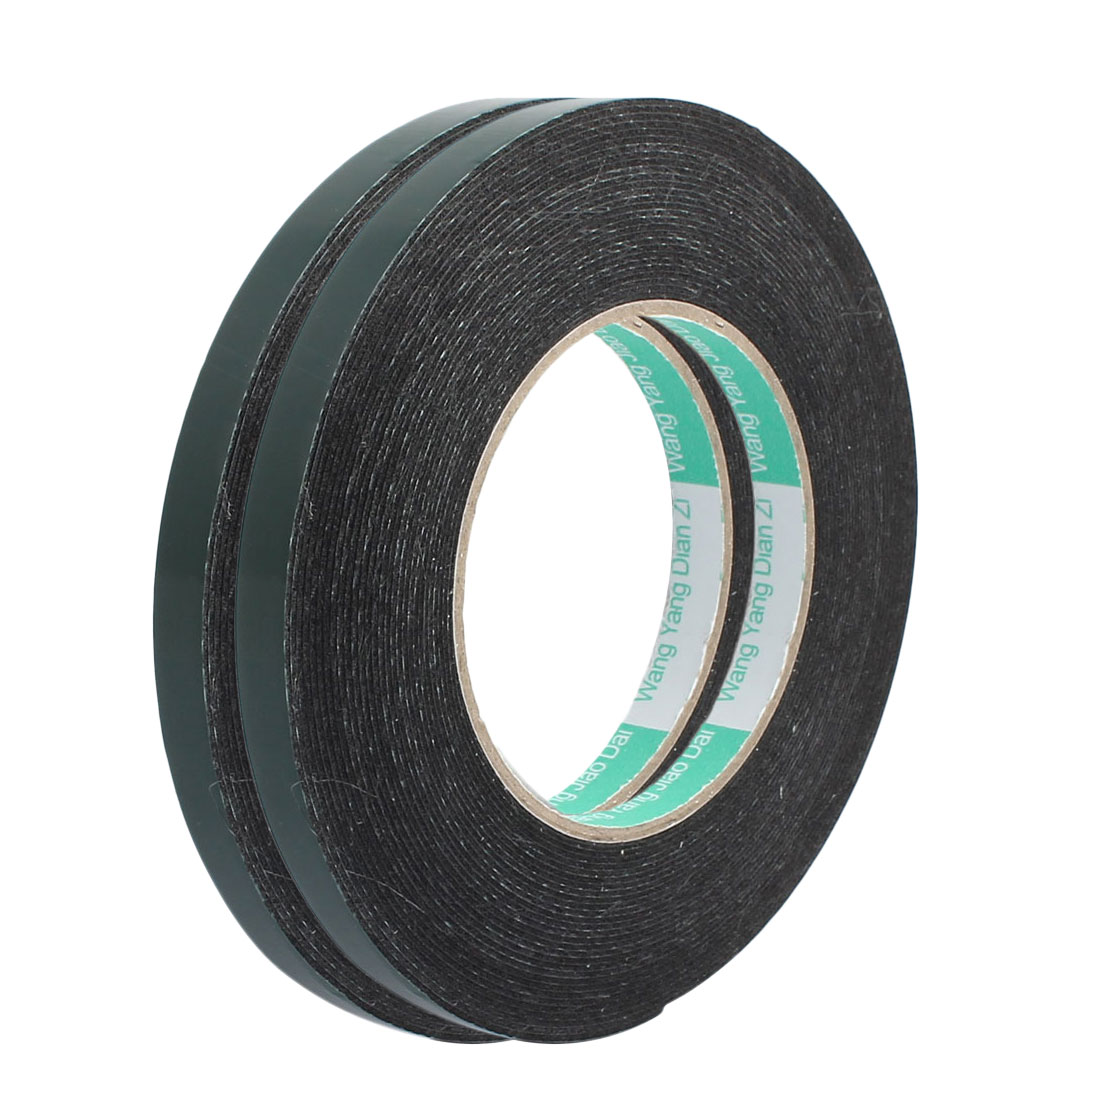 2pcs 10M x 10mm x 1mm Double-side Self Adhesive Shockproof Sponge Tape Green